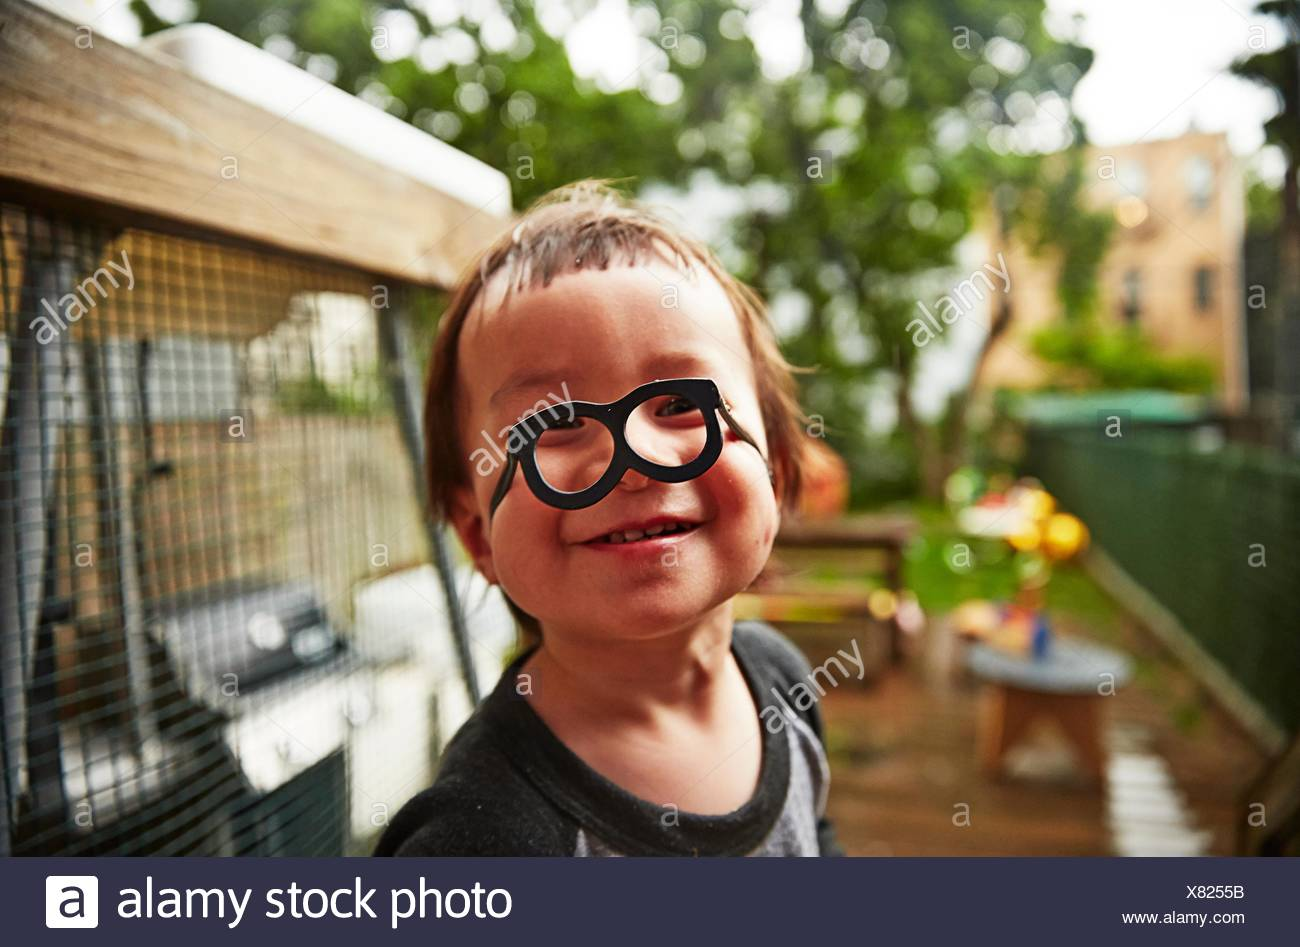 Boy with funny spectacles in garden - Stock Image